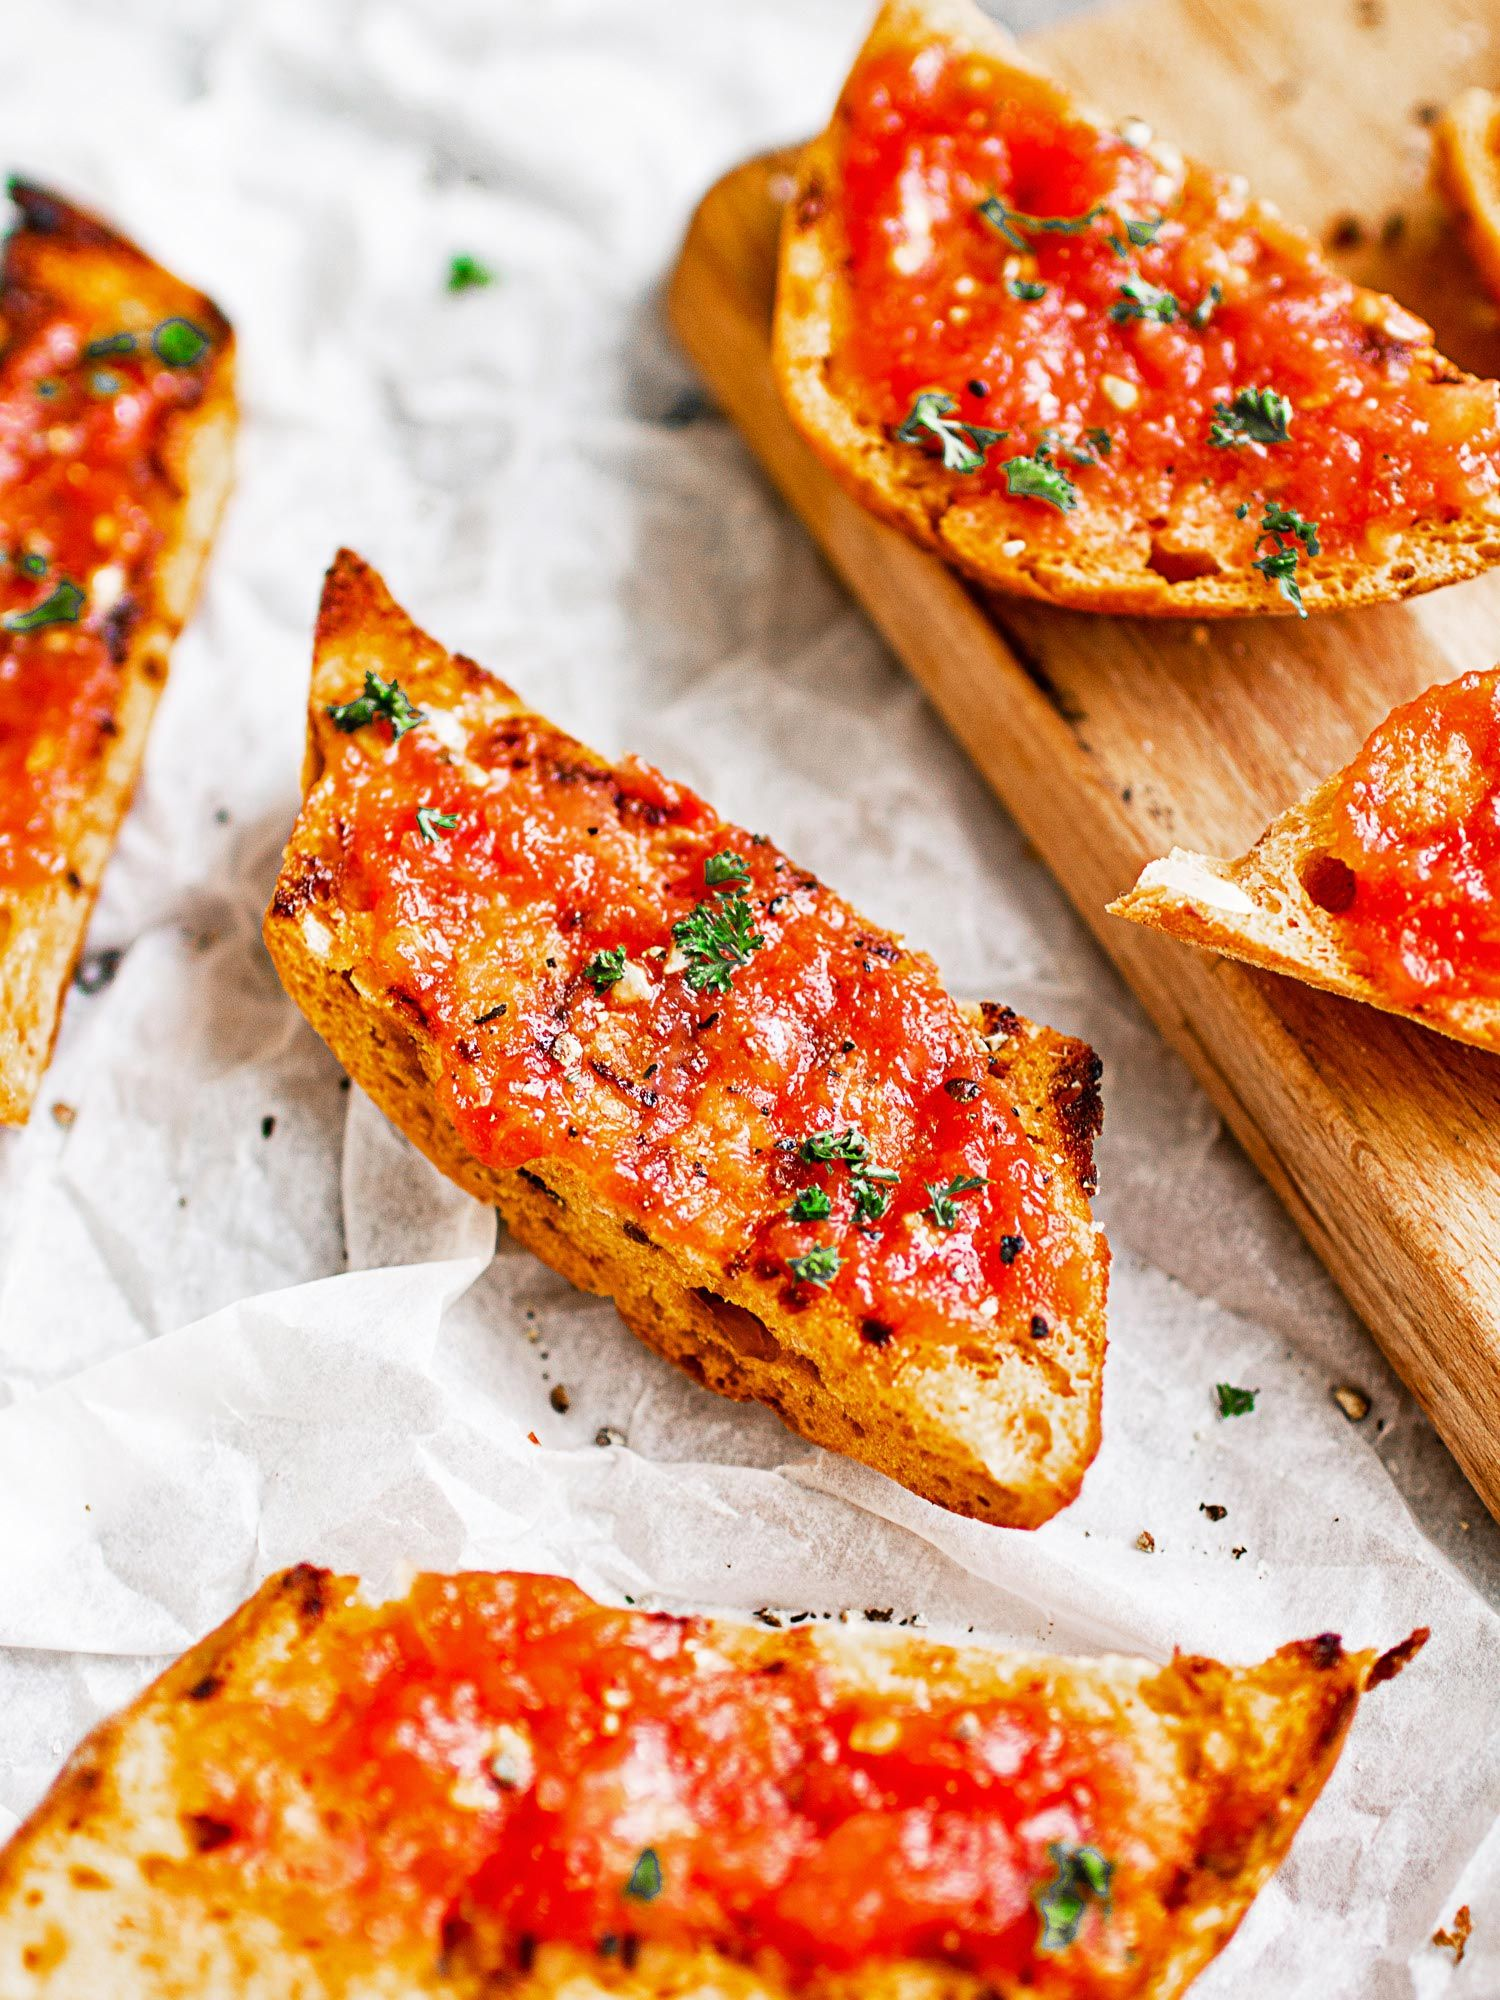 Spanish toast with tomato (Pan con tomate)